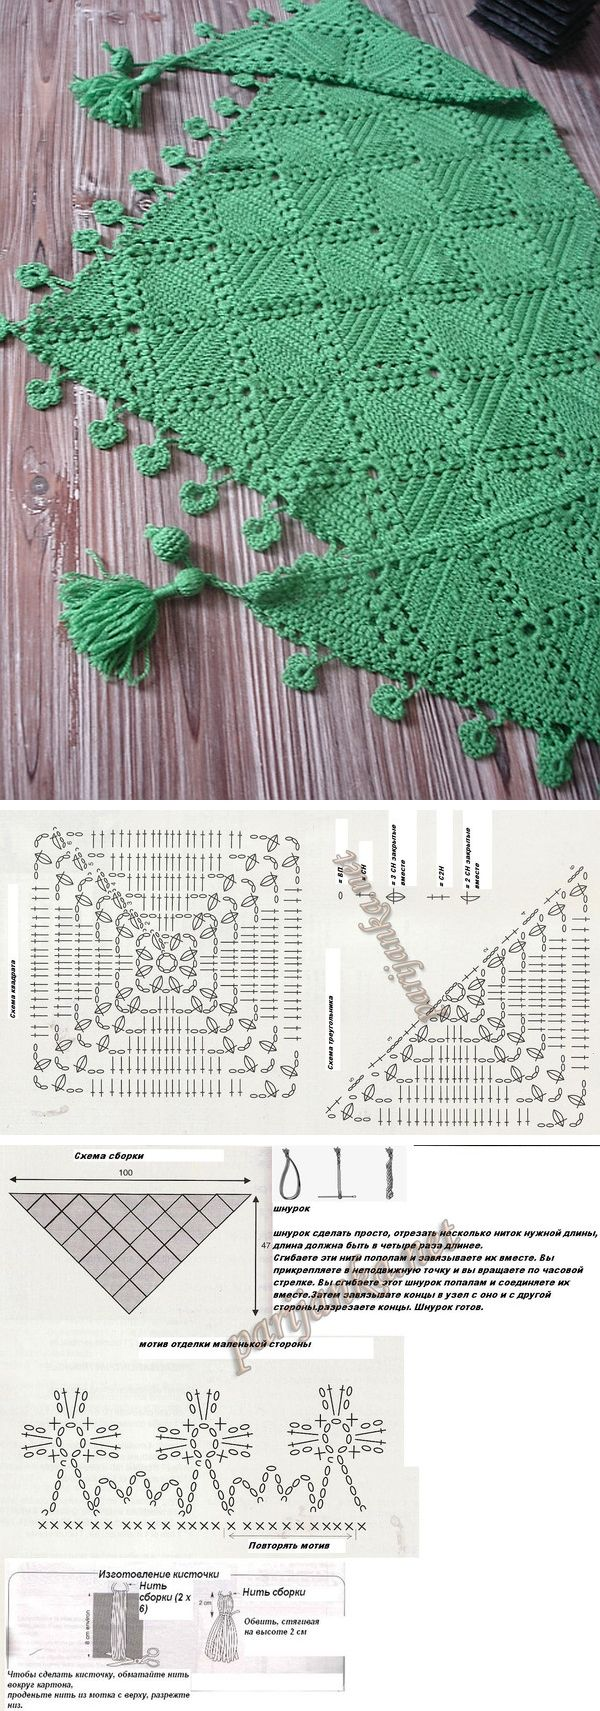 Chèche #024-T9-225, from Phildar. Delicate shawlette worked in fingering weight…